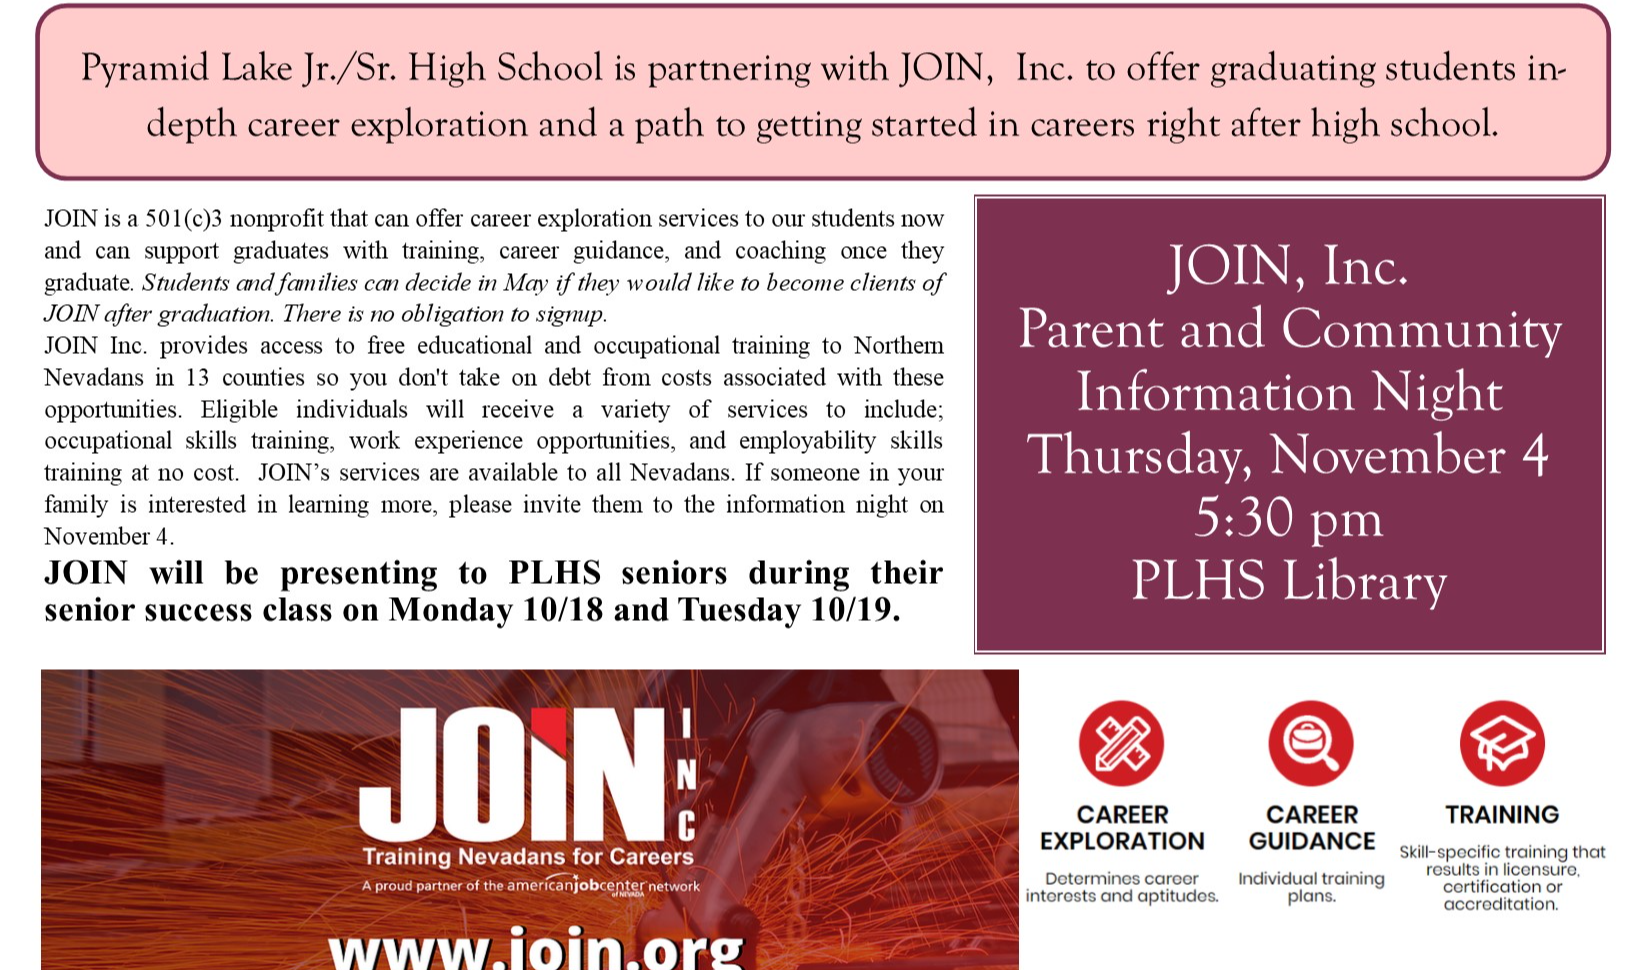 Pyramid Lake Jr./Sr. High School is partnering with JOIN,  Inc. JOIN is a 501(c)3 nonprofit that can offer career exploration services to our students now and can support graduates with training, career guidance, and coaching once they graduate. Students and families can decide in May if they would like to become clients of JOIN after graduation. There is no obligation to signup.  JOIN Inc. provides access to freeeducational and occupational training to Northern Nevadans in 13 counties so you don't take on debt fromcosts associated with these opportunities. Eligible individuals will receive a variety of services to include; occupational skills training, work experience opportunities, and employability skills training at no cost. JOIN's services are available to all Nevadans. If someone in your family is interested in learning more, please invite them to the information night on November 4.  JOIN will be presenting to PLHS seniors during their senior success class on Monday 10/18 and Tuesday 10/19. to offer graduating students in-depth career exploration and a path to getting started in careers right after high school. JOIN, Inc.  Parent and Community Information Night  Thursday, November 4 5:30 pm PLHS Library